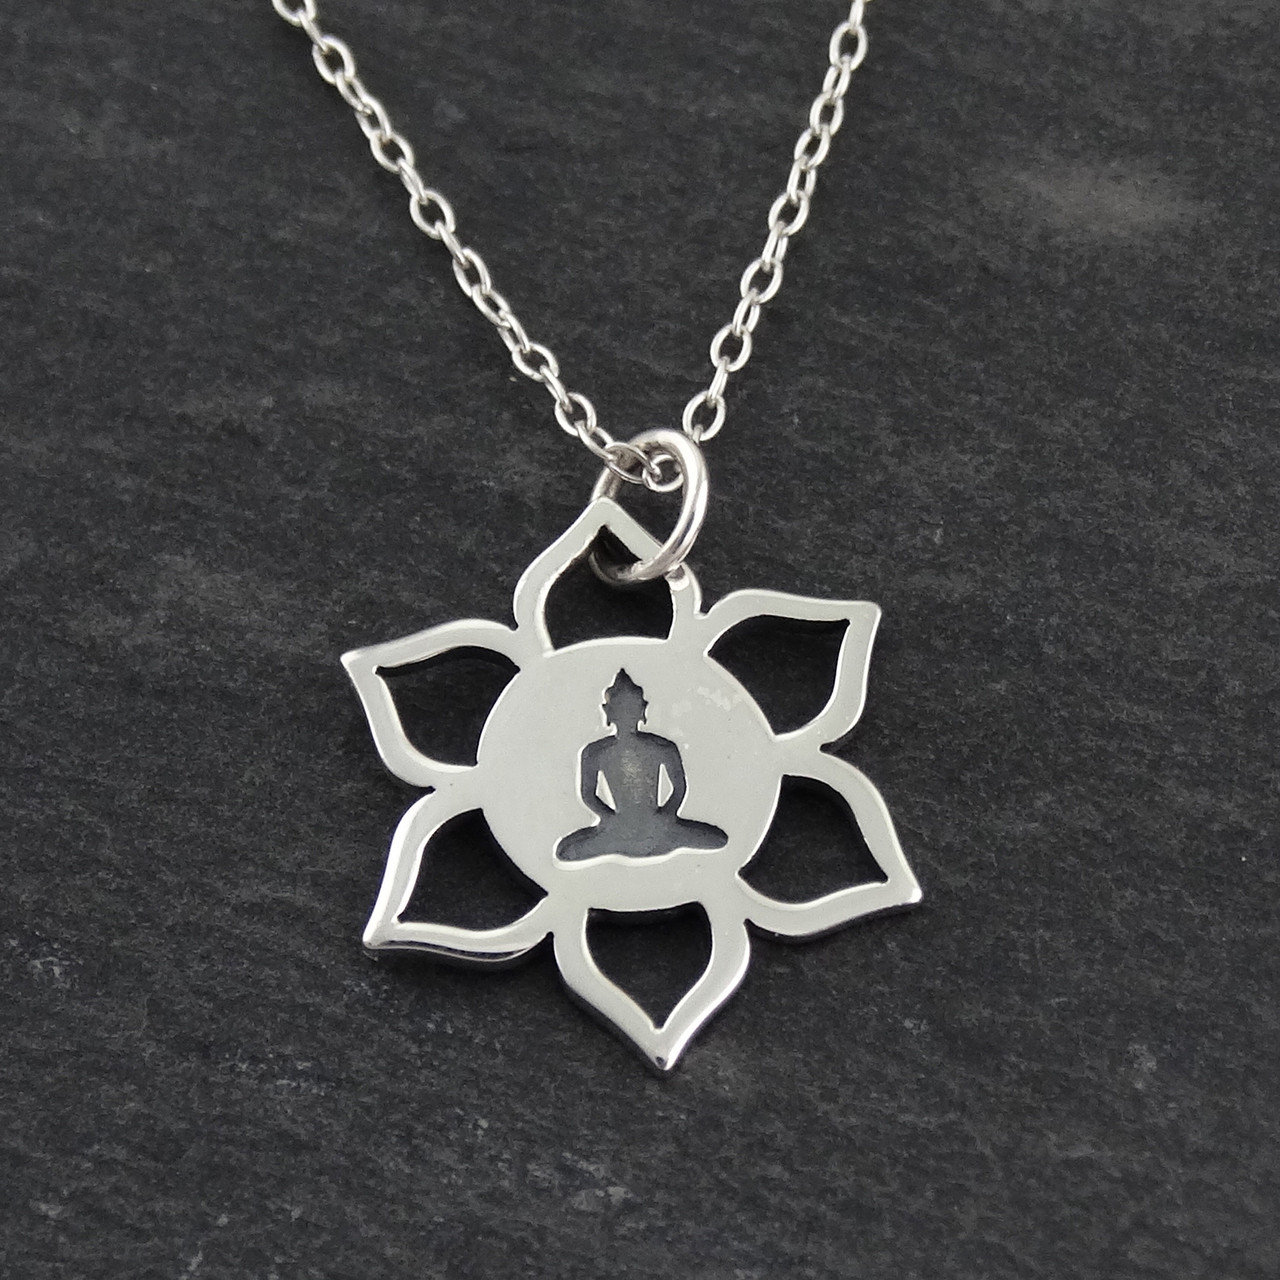 Buddha Lotus Flower Necklace In 925 Sterling Silver Fashionjunkie4life